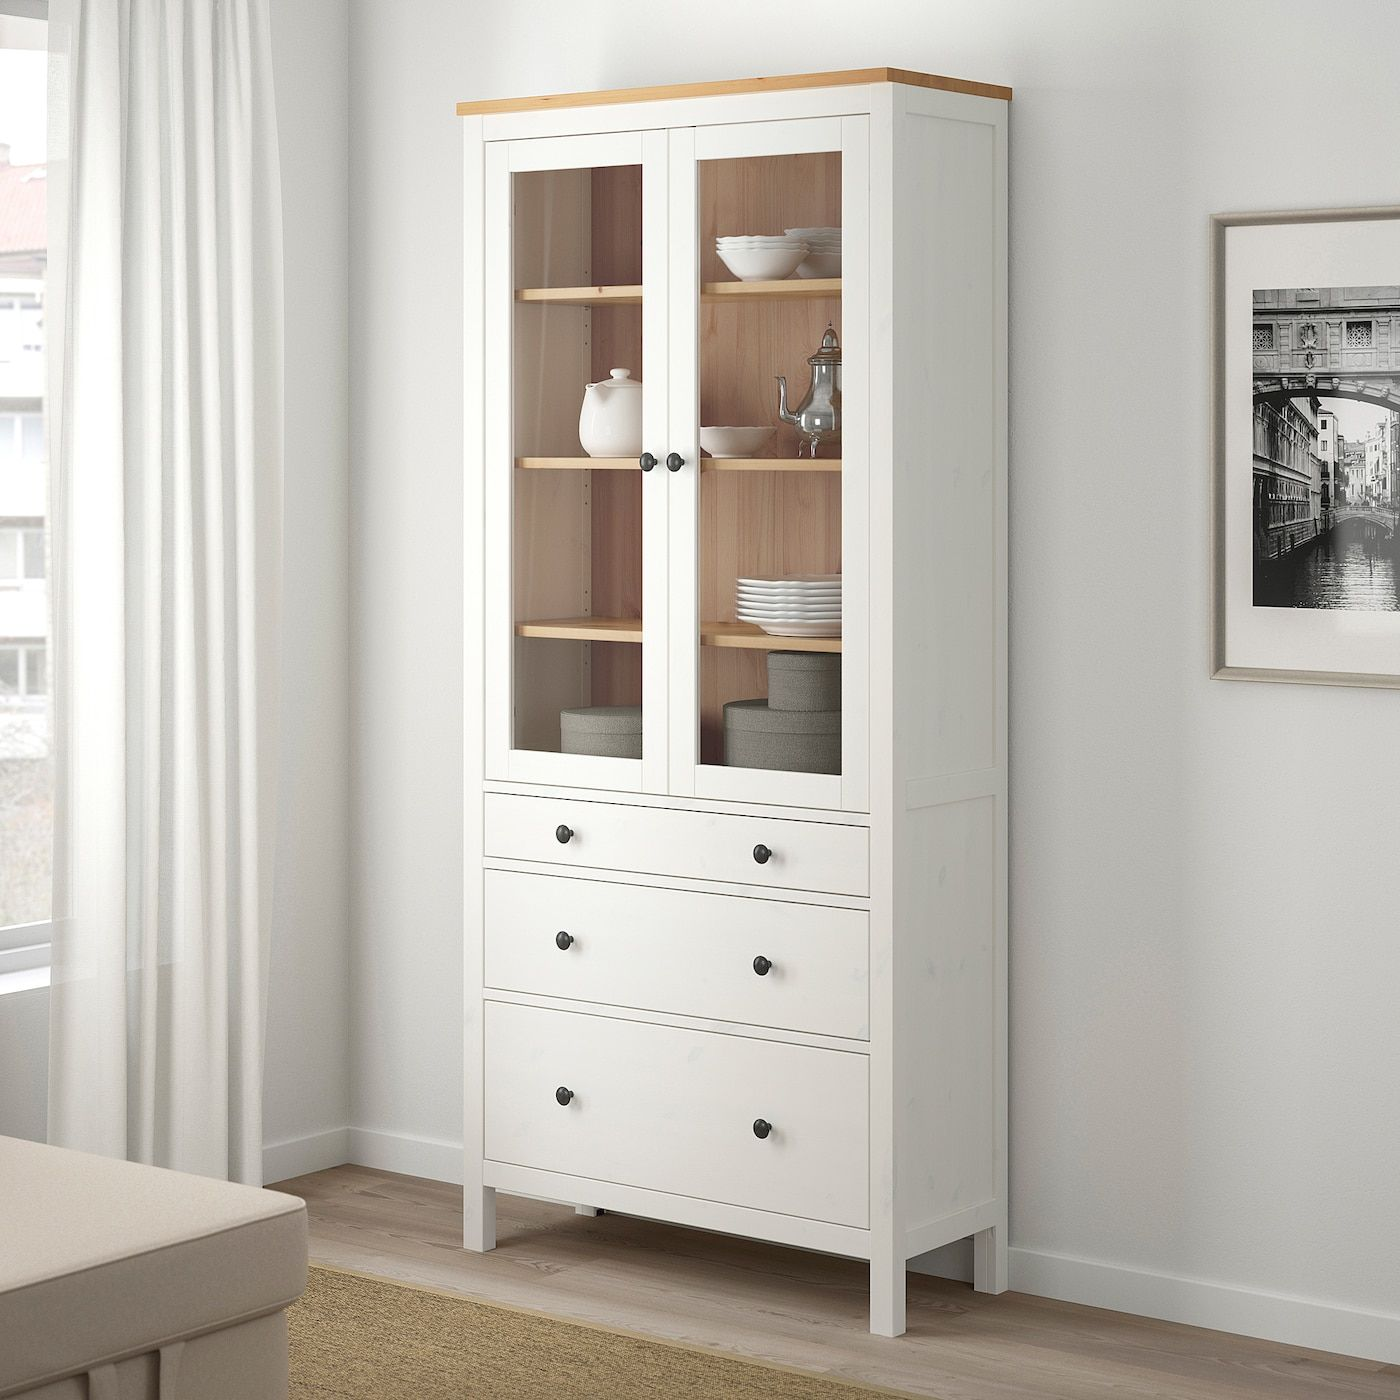 Hemnes Glass Door Cabinet With 3 Drawers White Stain Light Brown 35 3 8x77 1 2